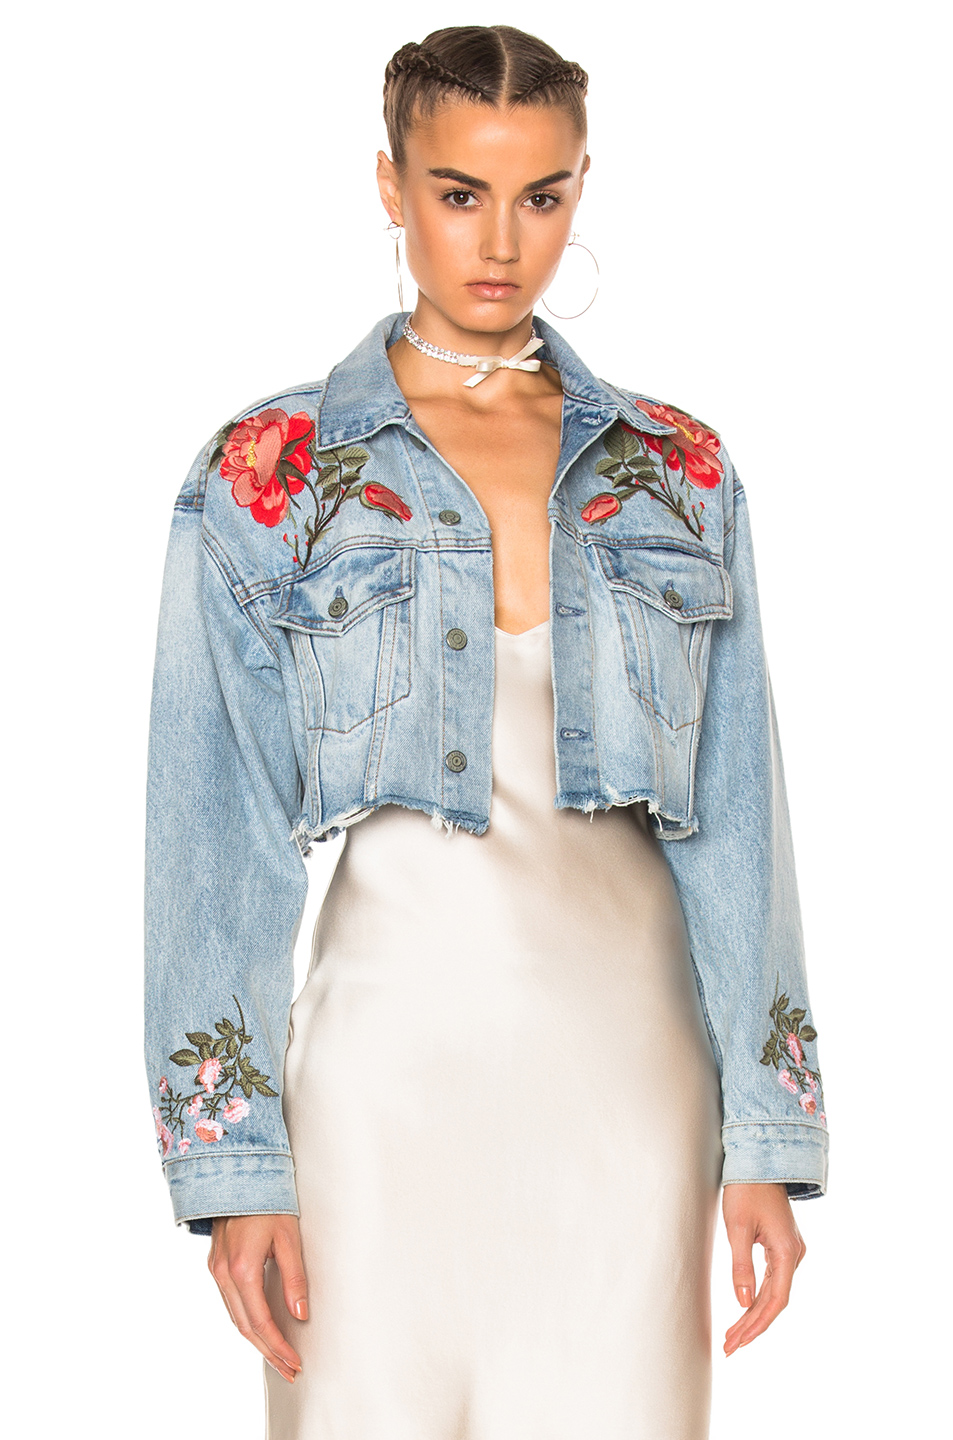 GRLFRND for FWRD Cropped Boyfriend Trucker Jacket in Blue